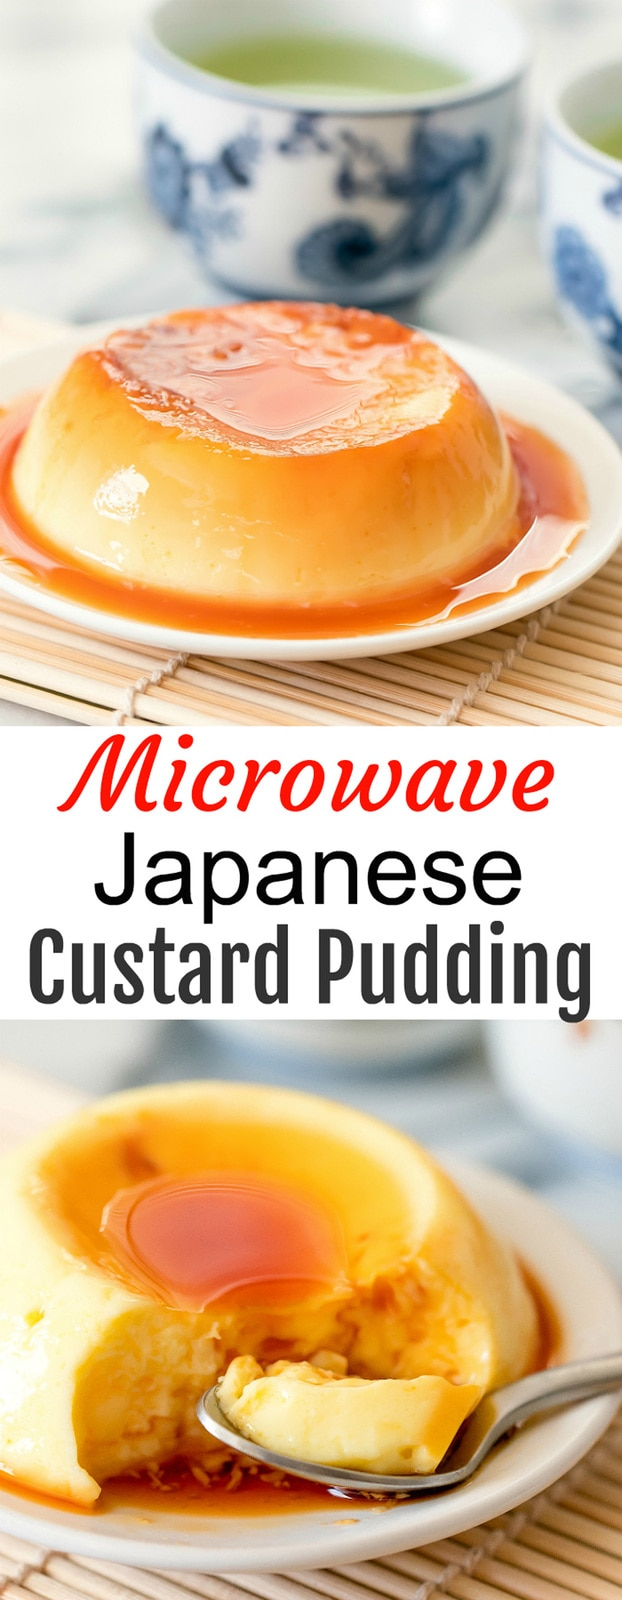 Microwave Japanese Custard Pudding. Silky, creamy purin pudding. This is a single serving shortcut microwave version of purin pudding, which is a flan-like egg custard dessert.